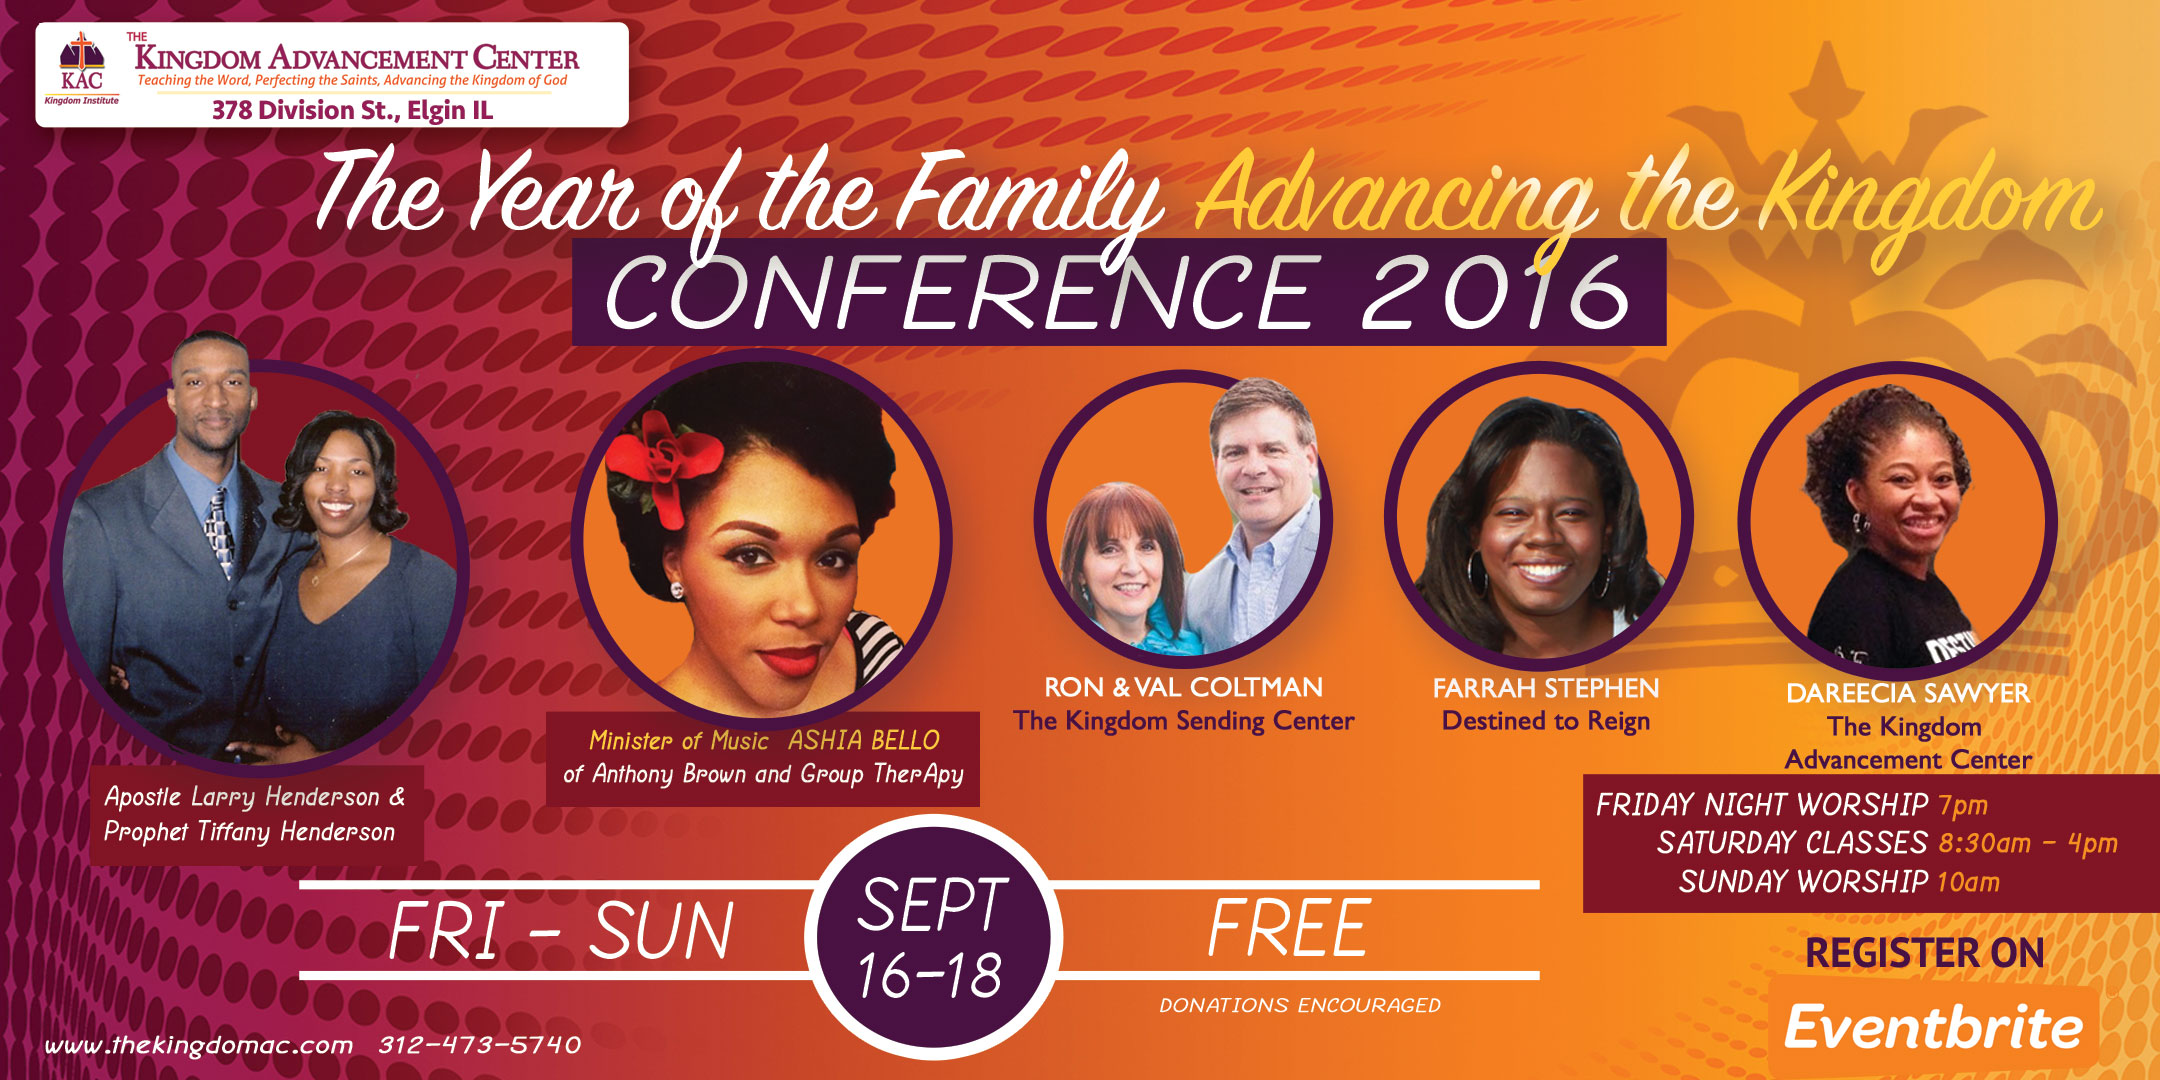 The Year of the Family Advancing the Kingdom Conference 2016